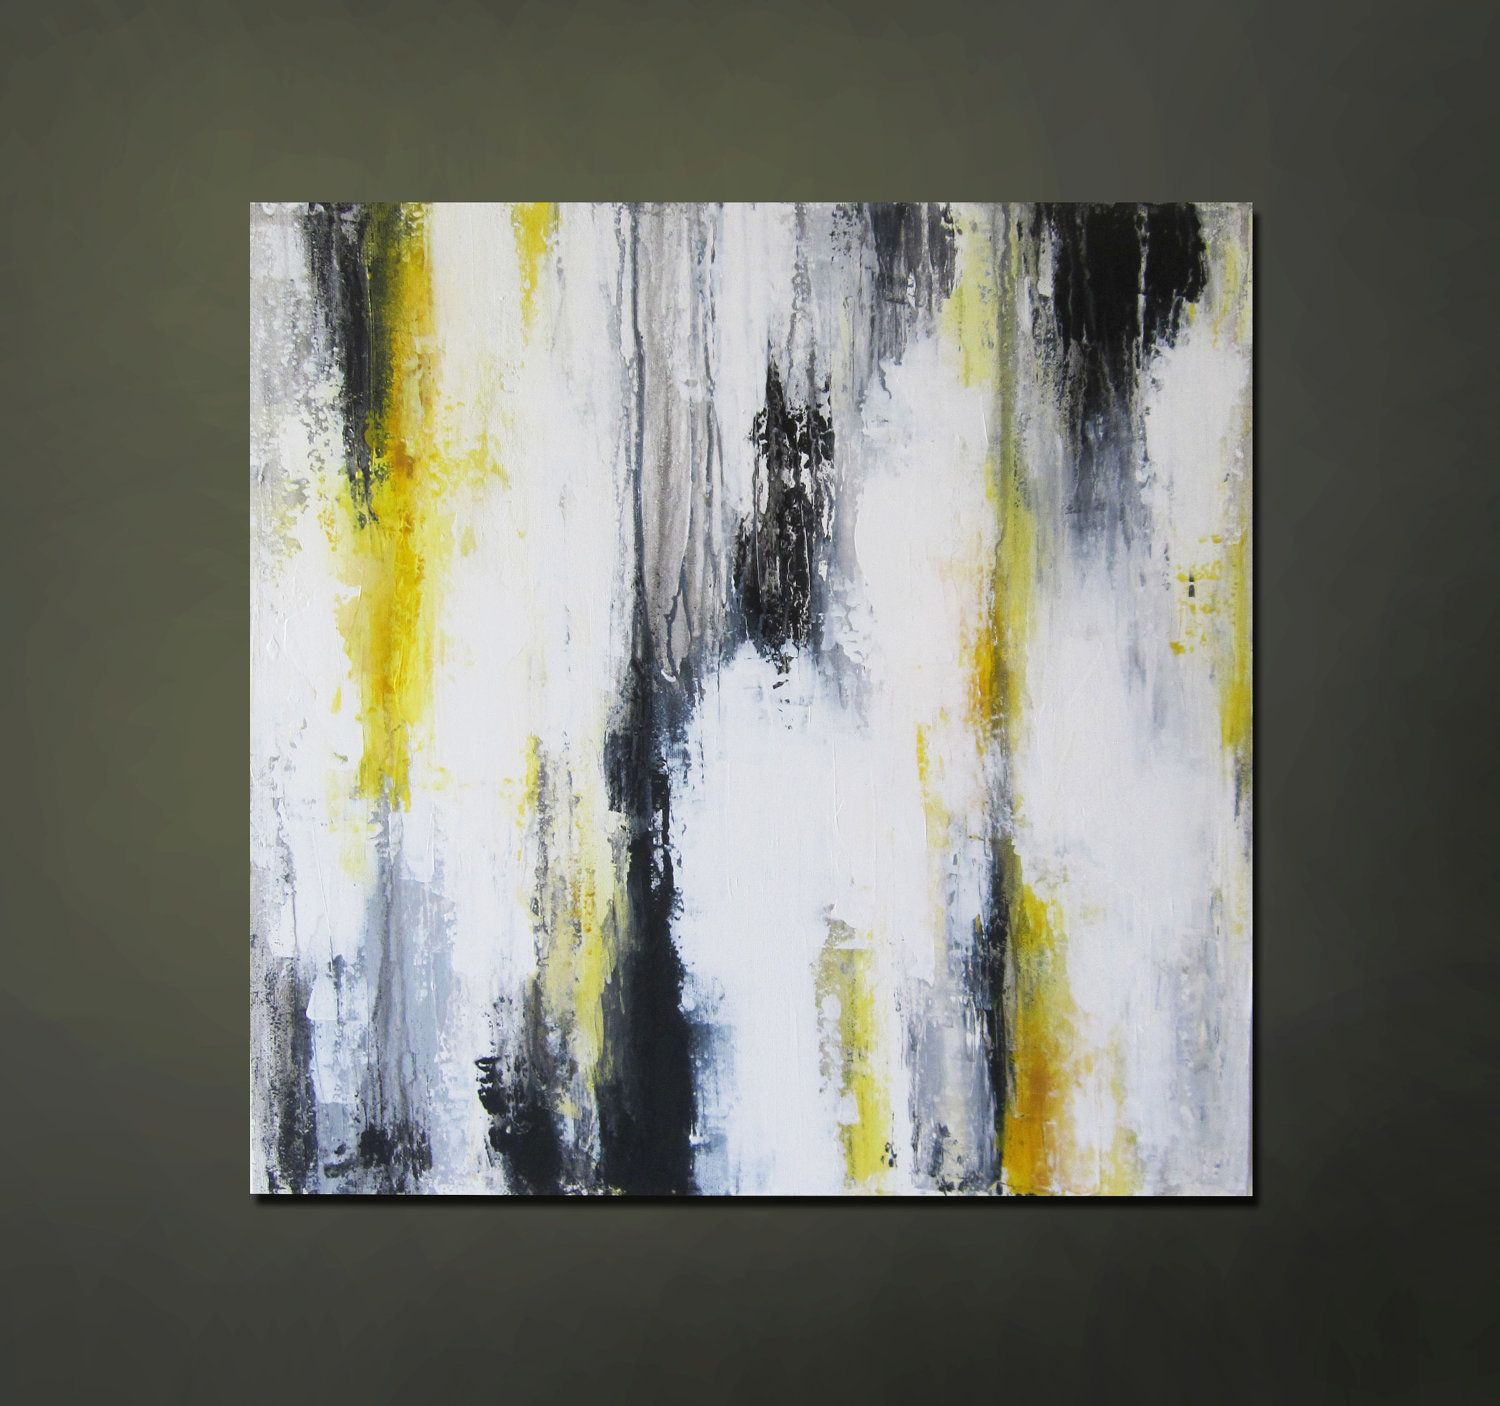 Black White And Gray Paintings Modern Contemporary Abstract Yellow Gray Black White